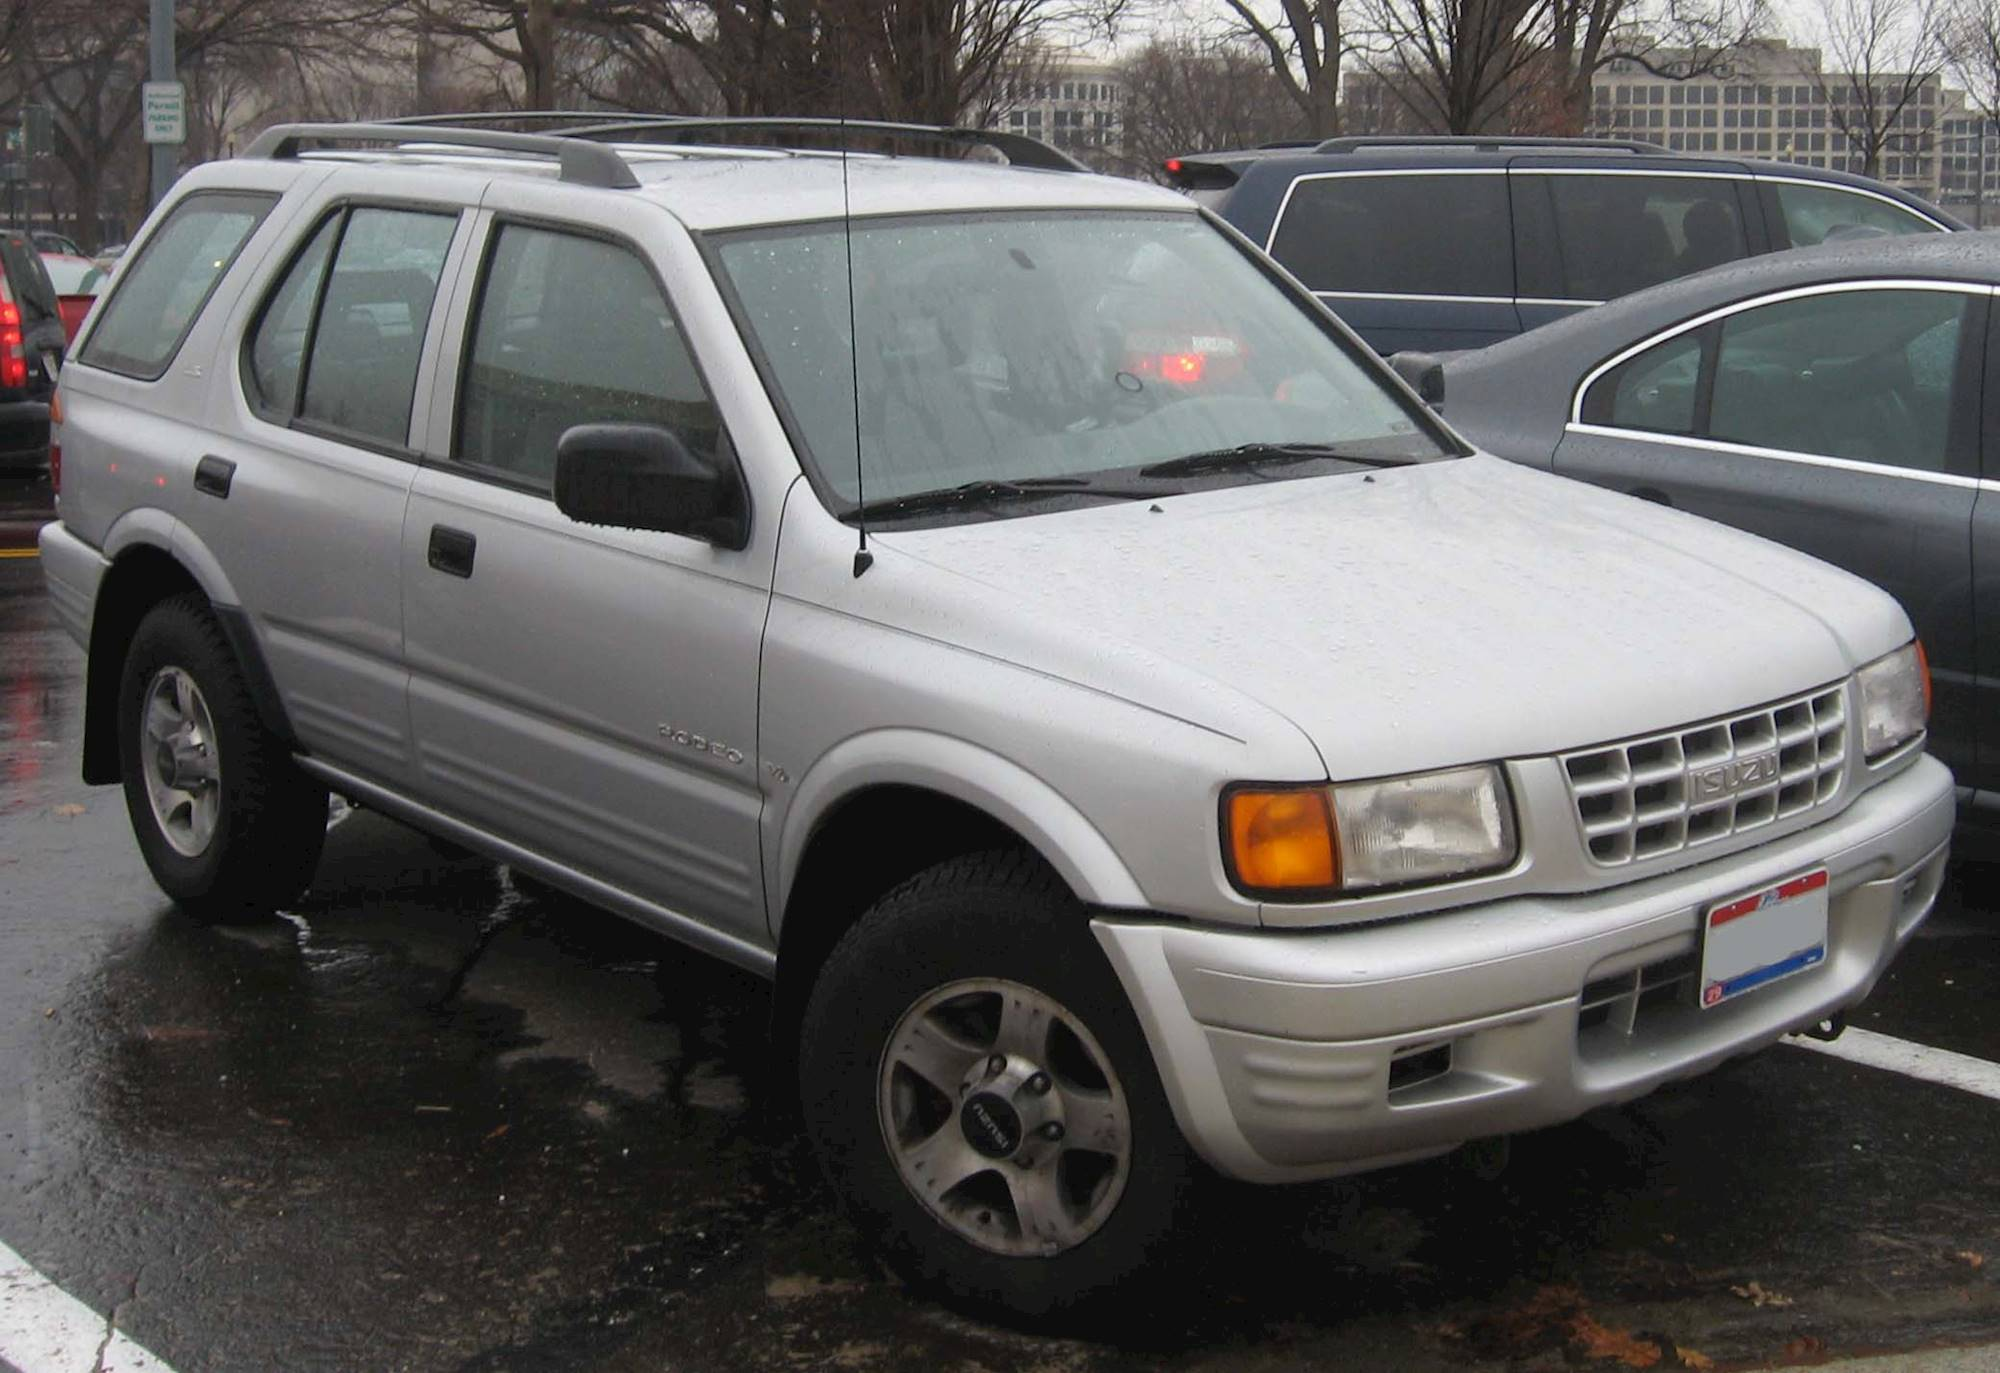 2004 Isuzu Rodeo S 4dr Suv 3 2l V6 Manual